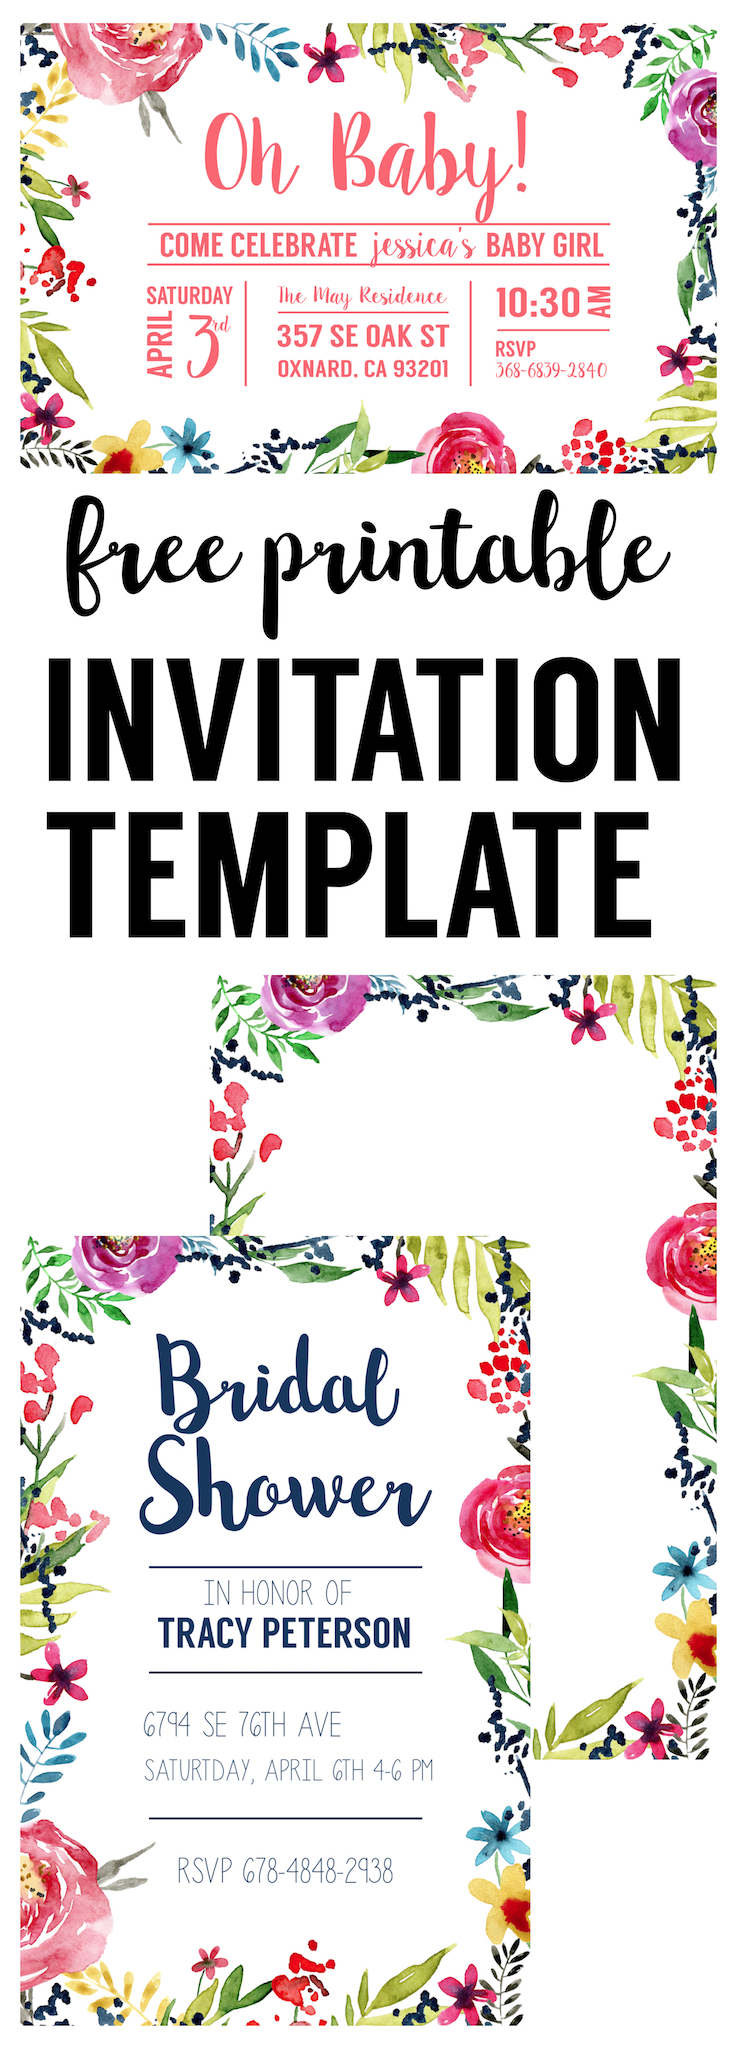 graphic about Free Printable Flower Borders named Floral Borders Invites No cost Printable Invitation